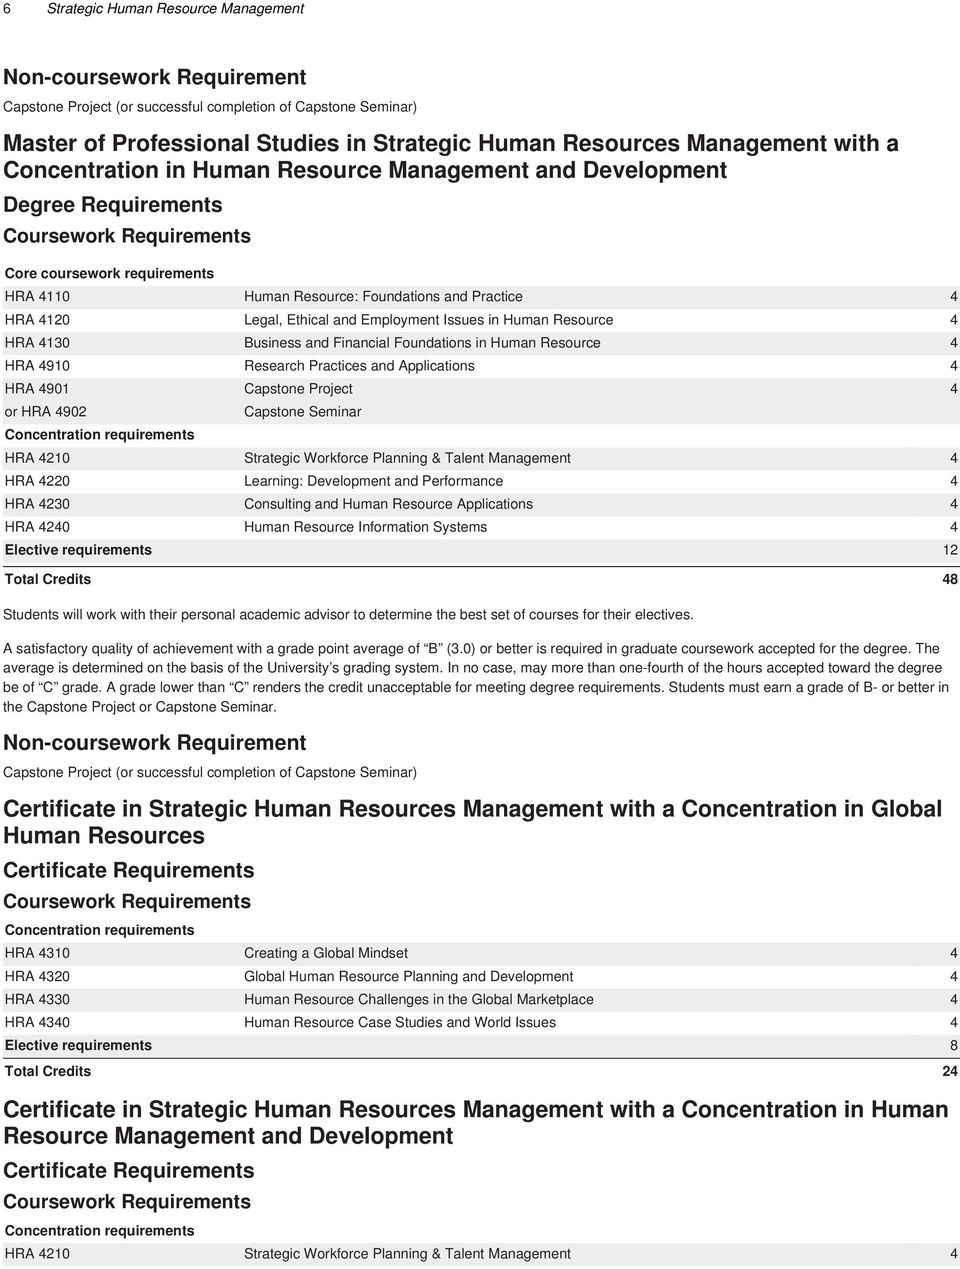 4910 Research Practices and Applications 4 HRA 4901 Capstone Project 4 or HRA 4902 Capstone Seminar HRA 4210 Strategic Workforce Planning & Talent Management 4 HRA 4220 Learning: Development and